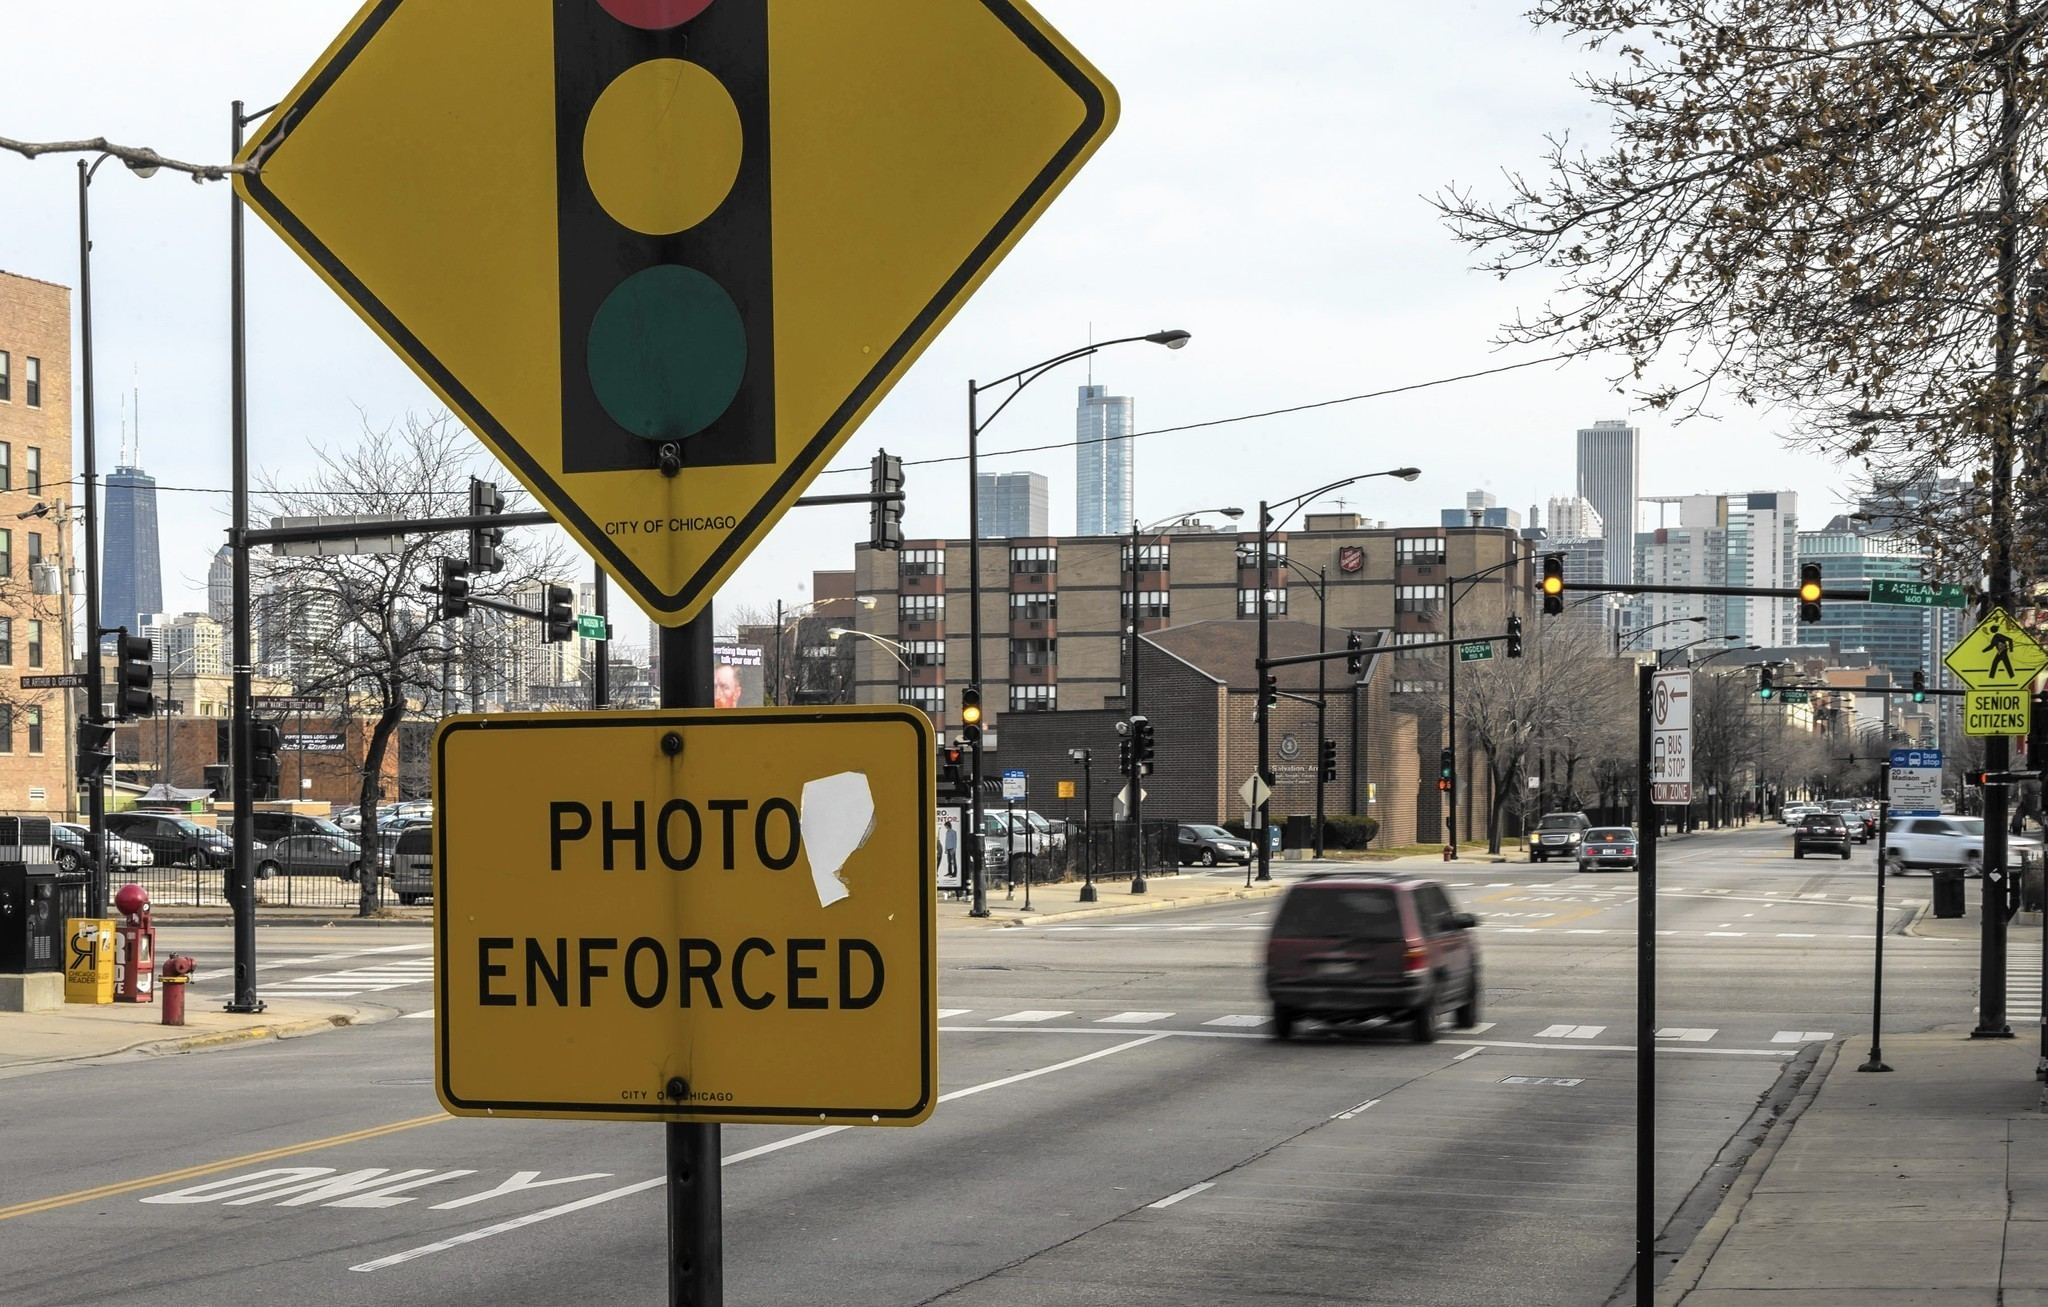 Experts Chicagos Short Yellow Light Times Red Cameras A Chicago 3 Way Wiring Diagram Risky Mix Tribune